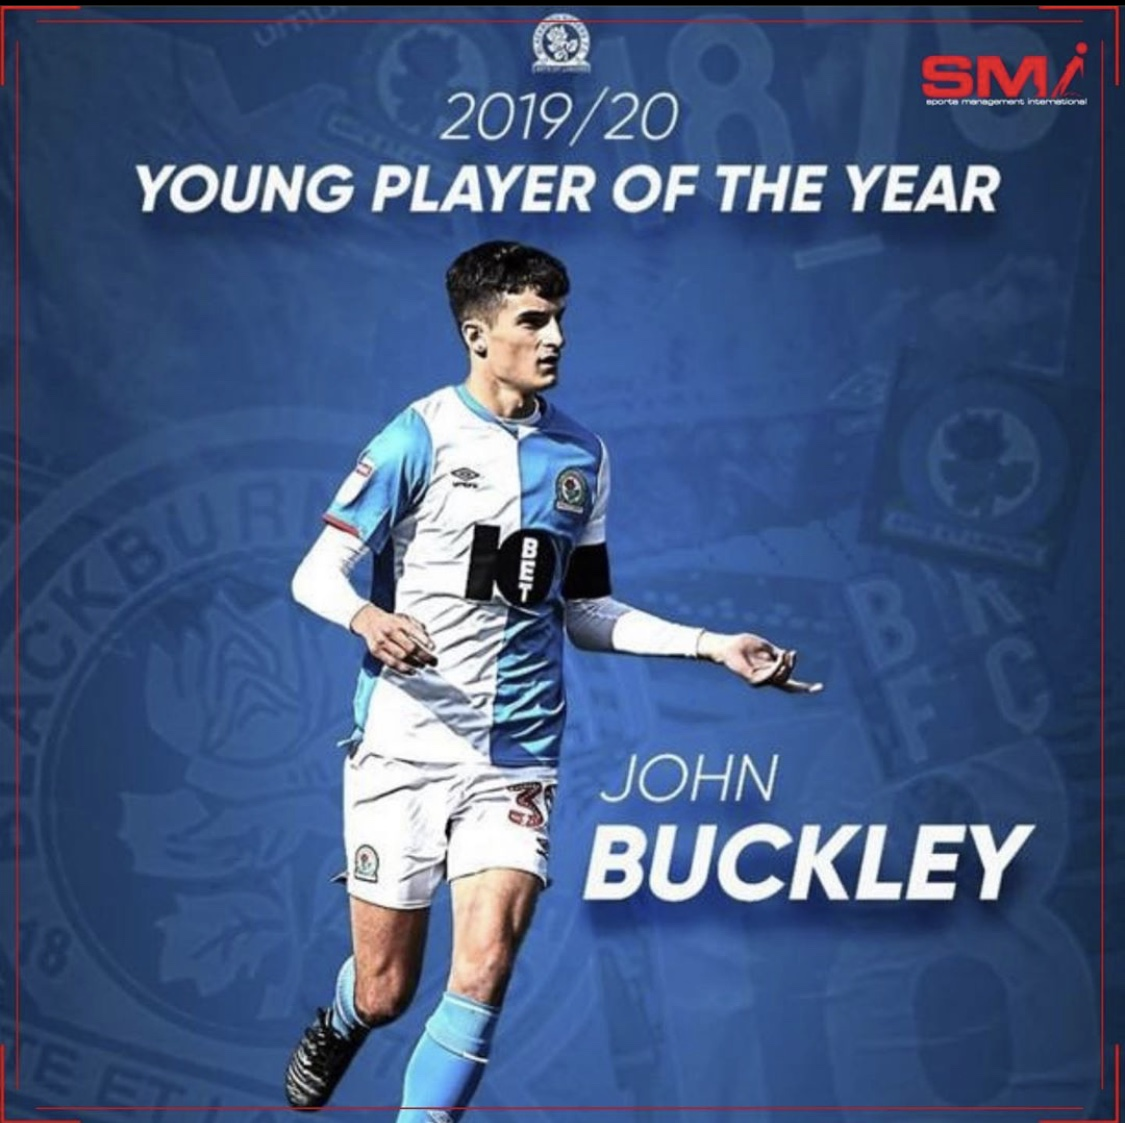 John Buckley young player of the year